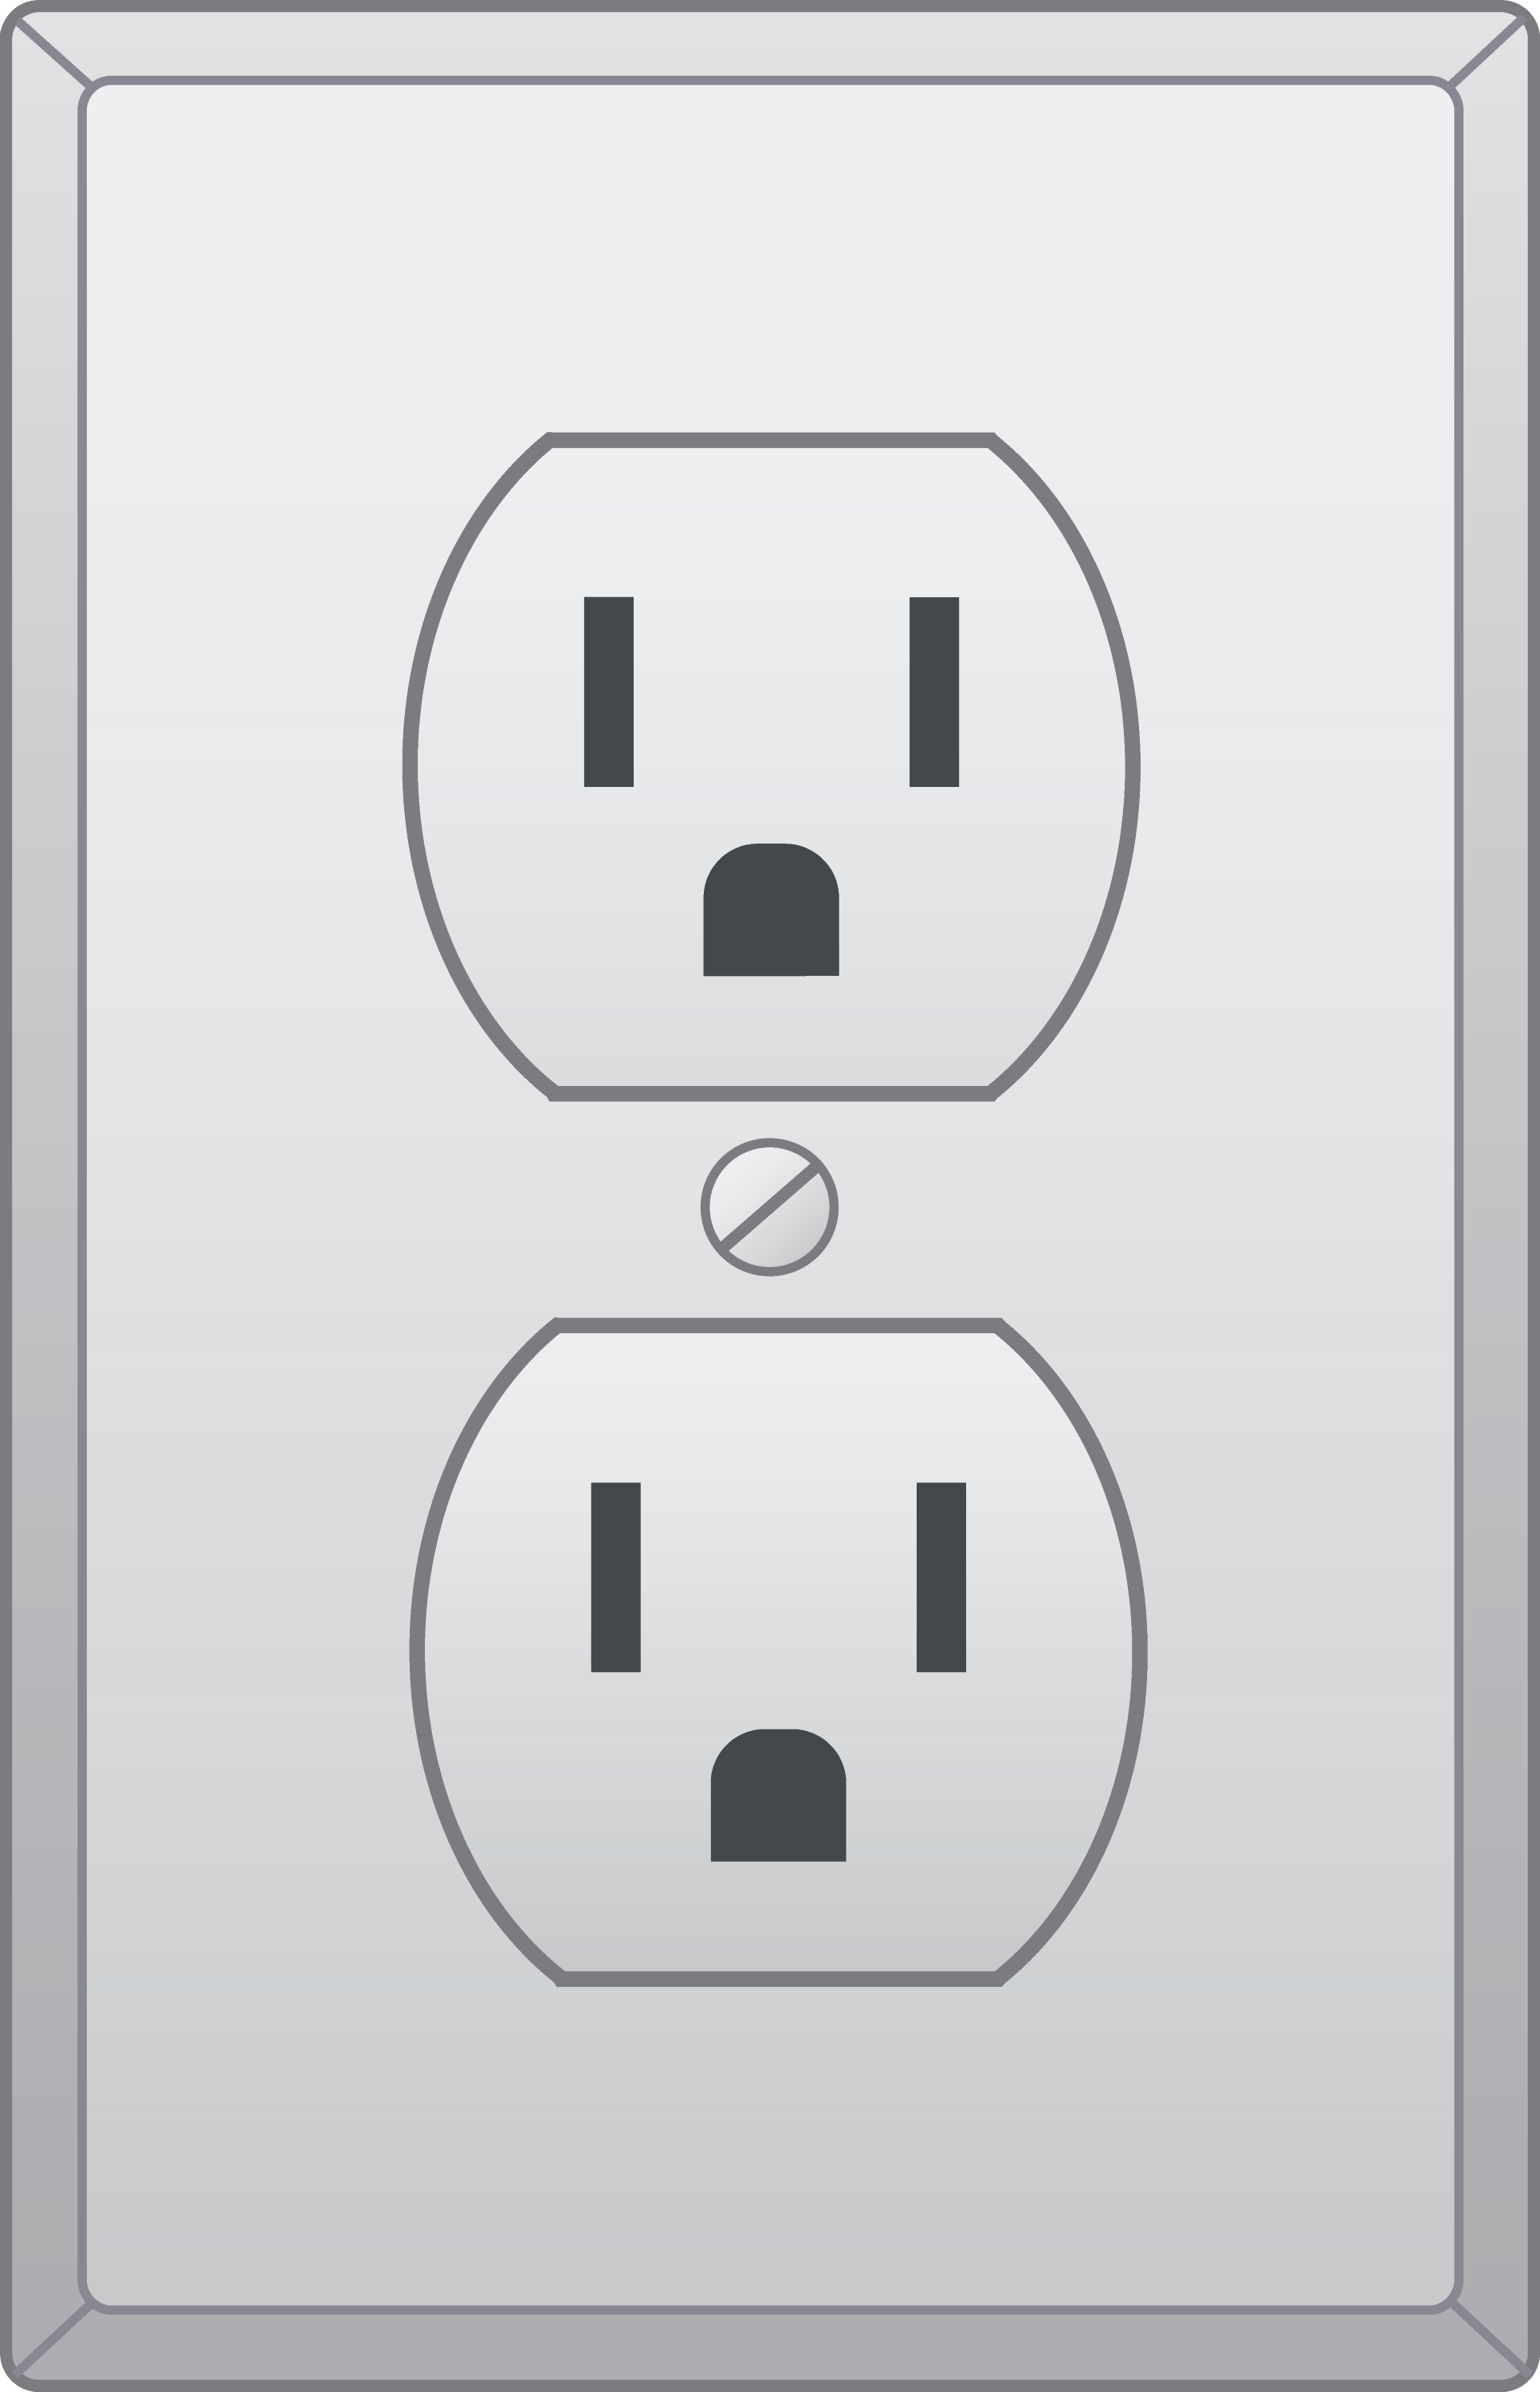 Power Plug Drawing Electrical Outlet